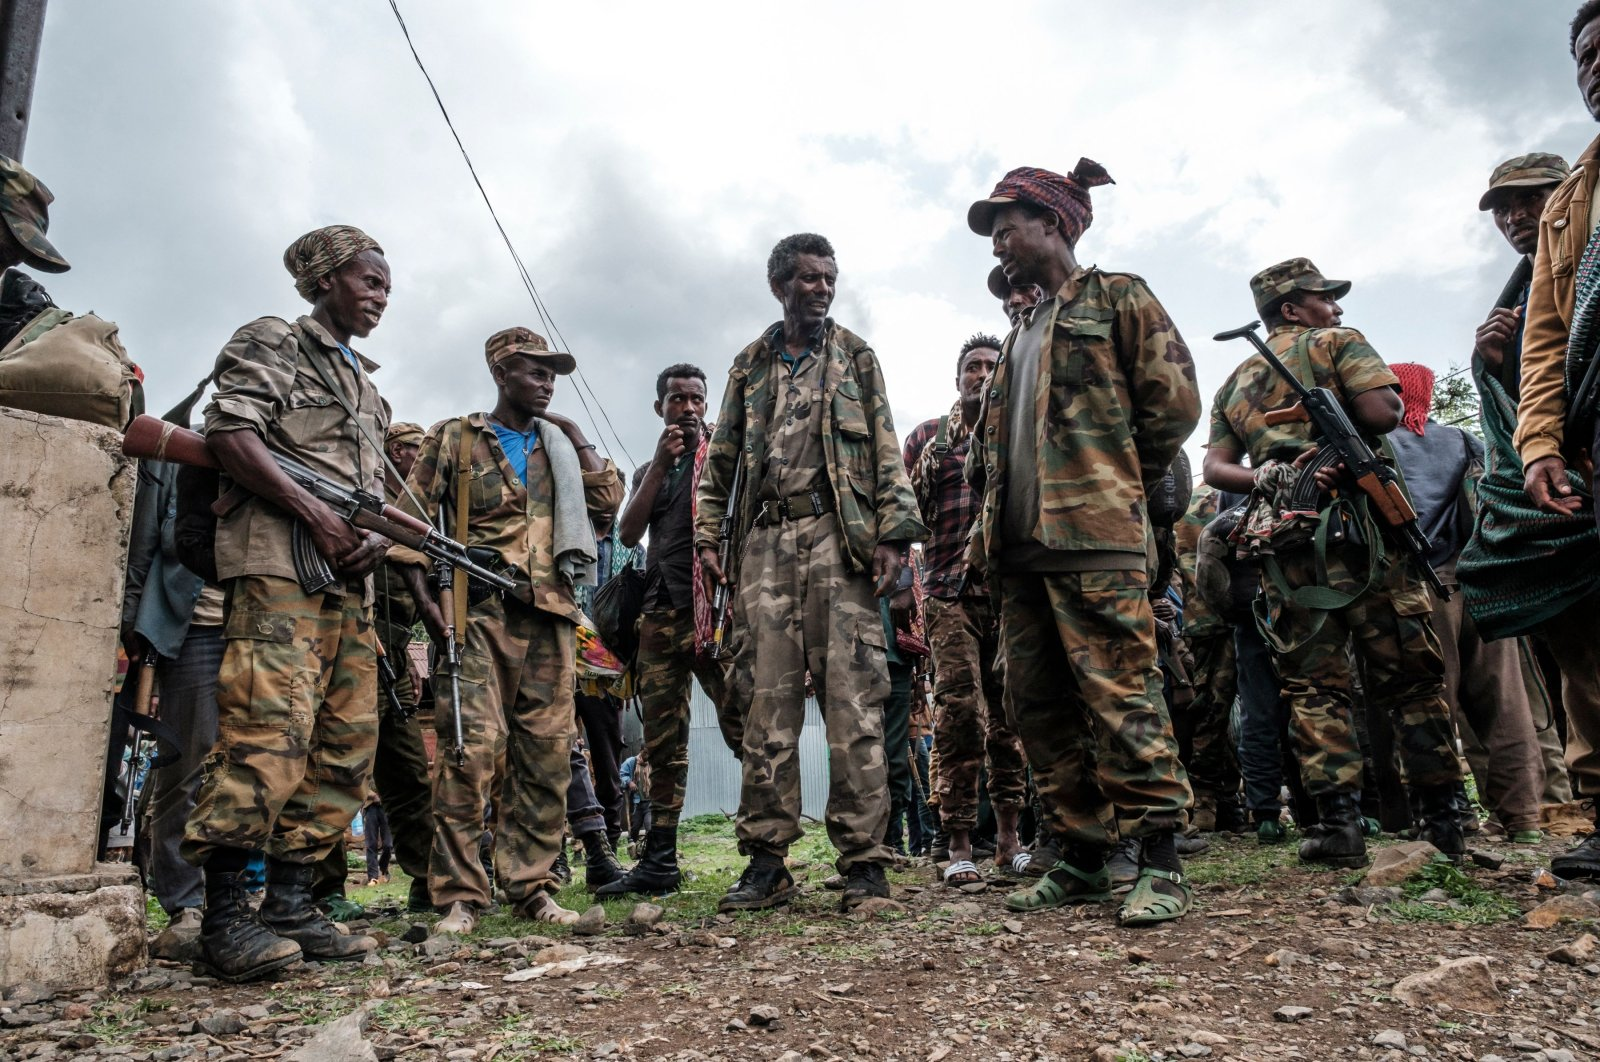 Members of the Amhara militia gather in the village of Adi Arkay, 180 kilometers northeast from the city of Gondar, Ethiopia, on July 14, 2021. (AFP Photo)